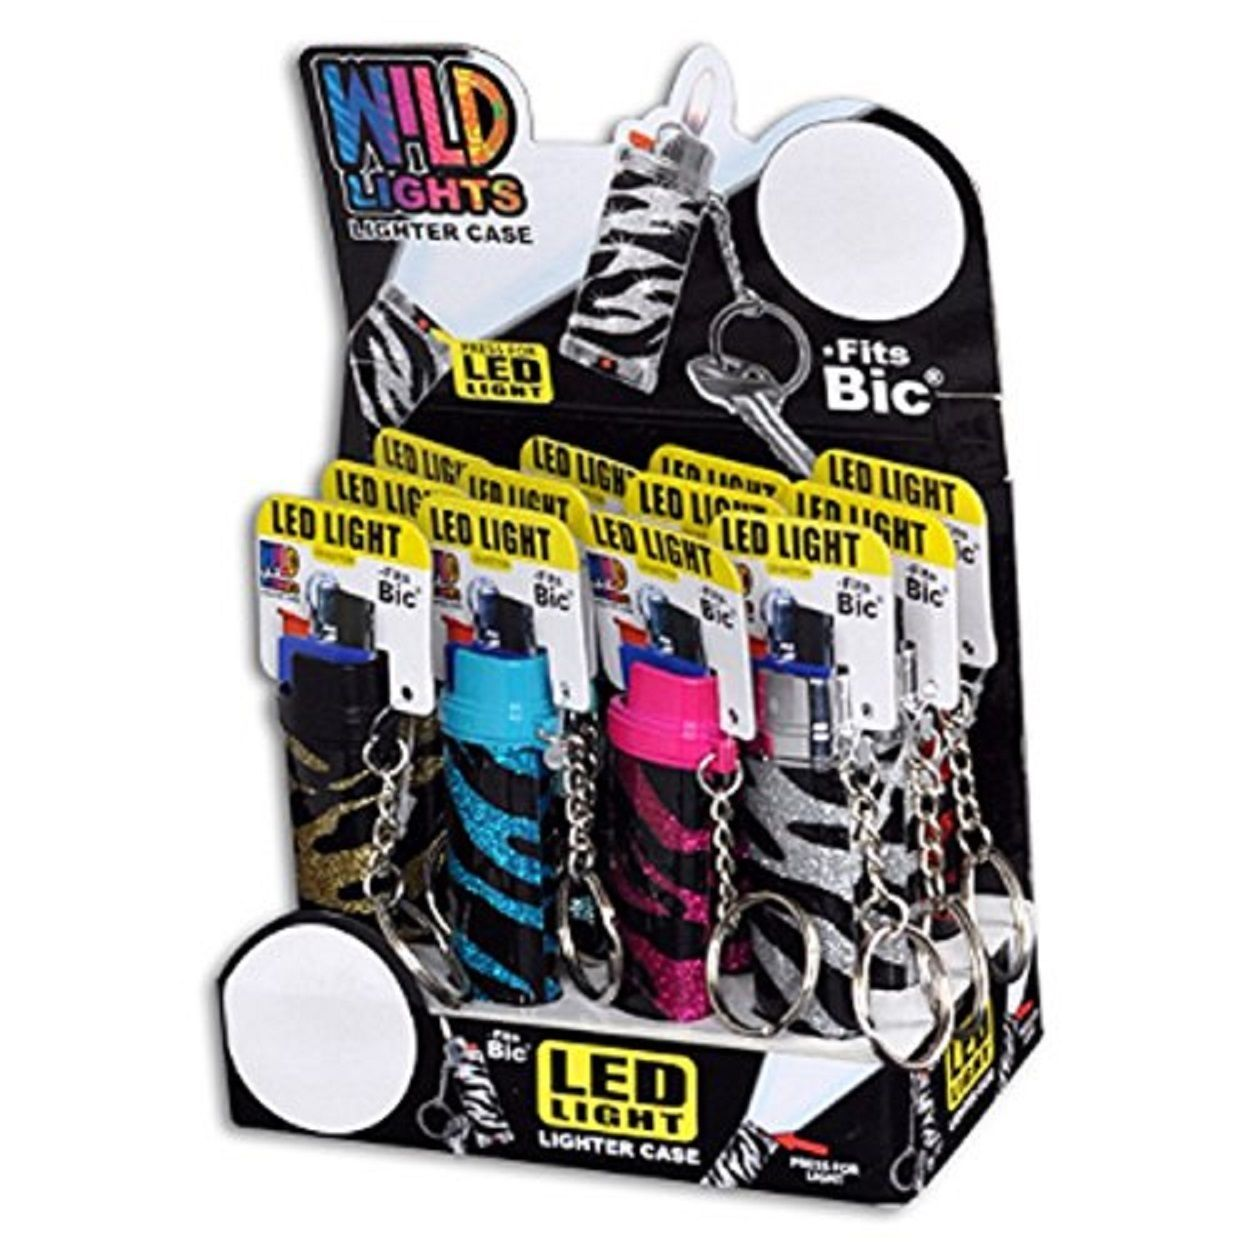 WILD LIGHTS LIGHTER CASE WITH LED - ONE CASE WITH RANDOM DESIGN AND COLOR